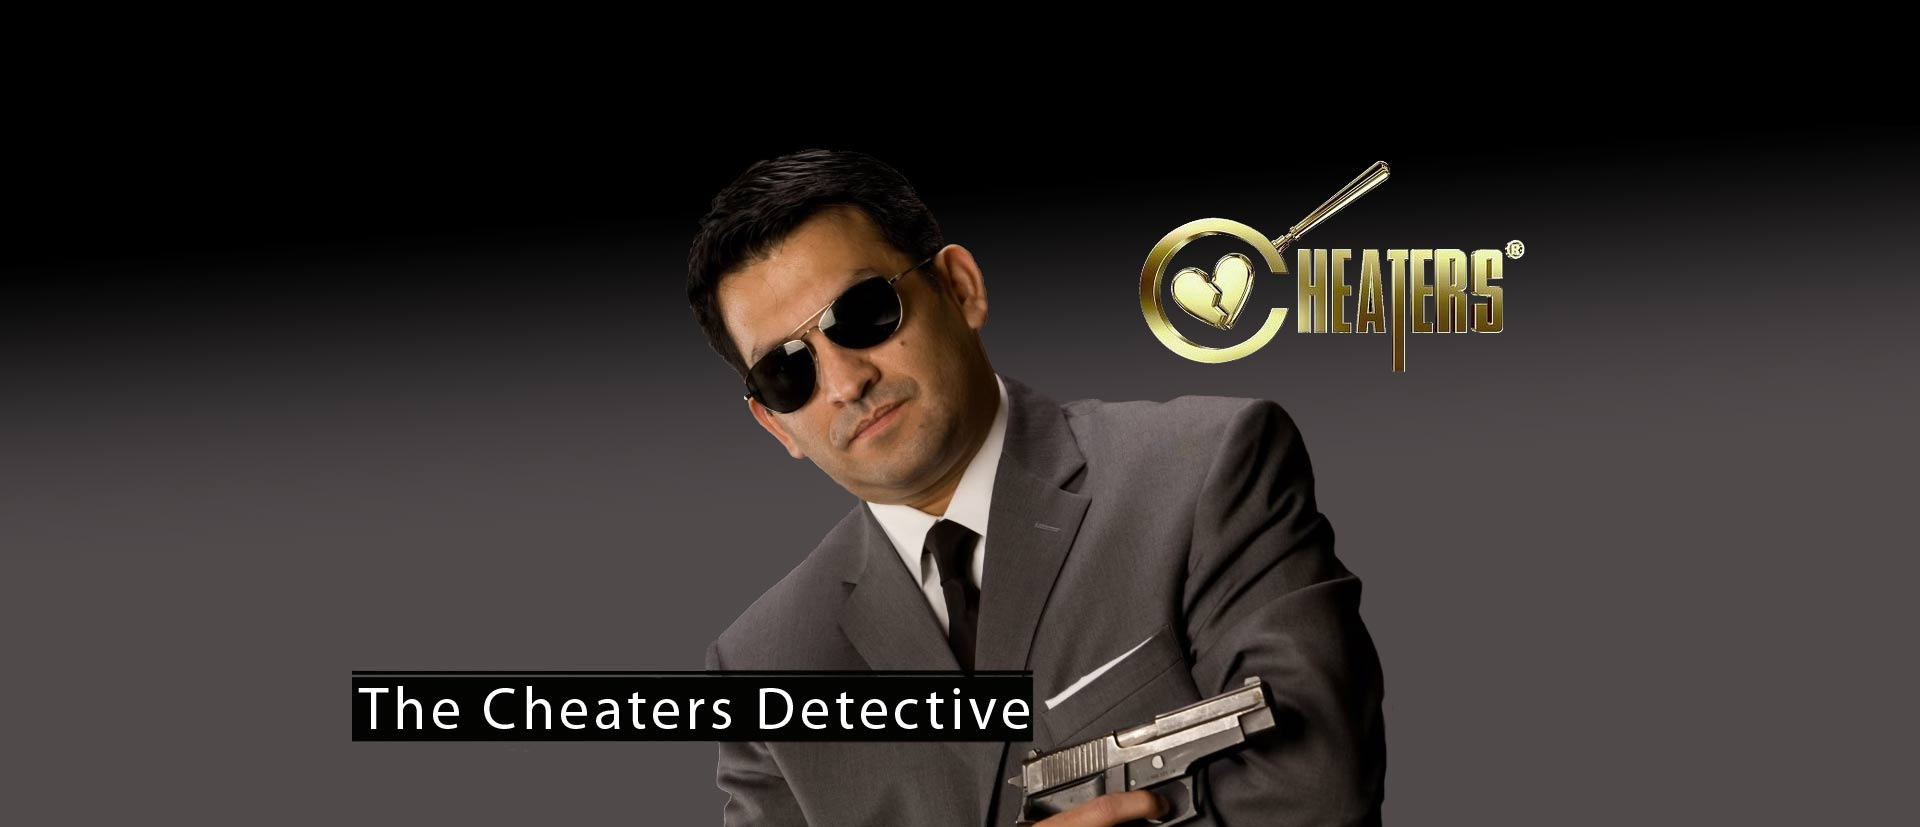 The Cheaters Detective